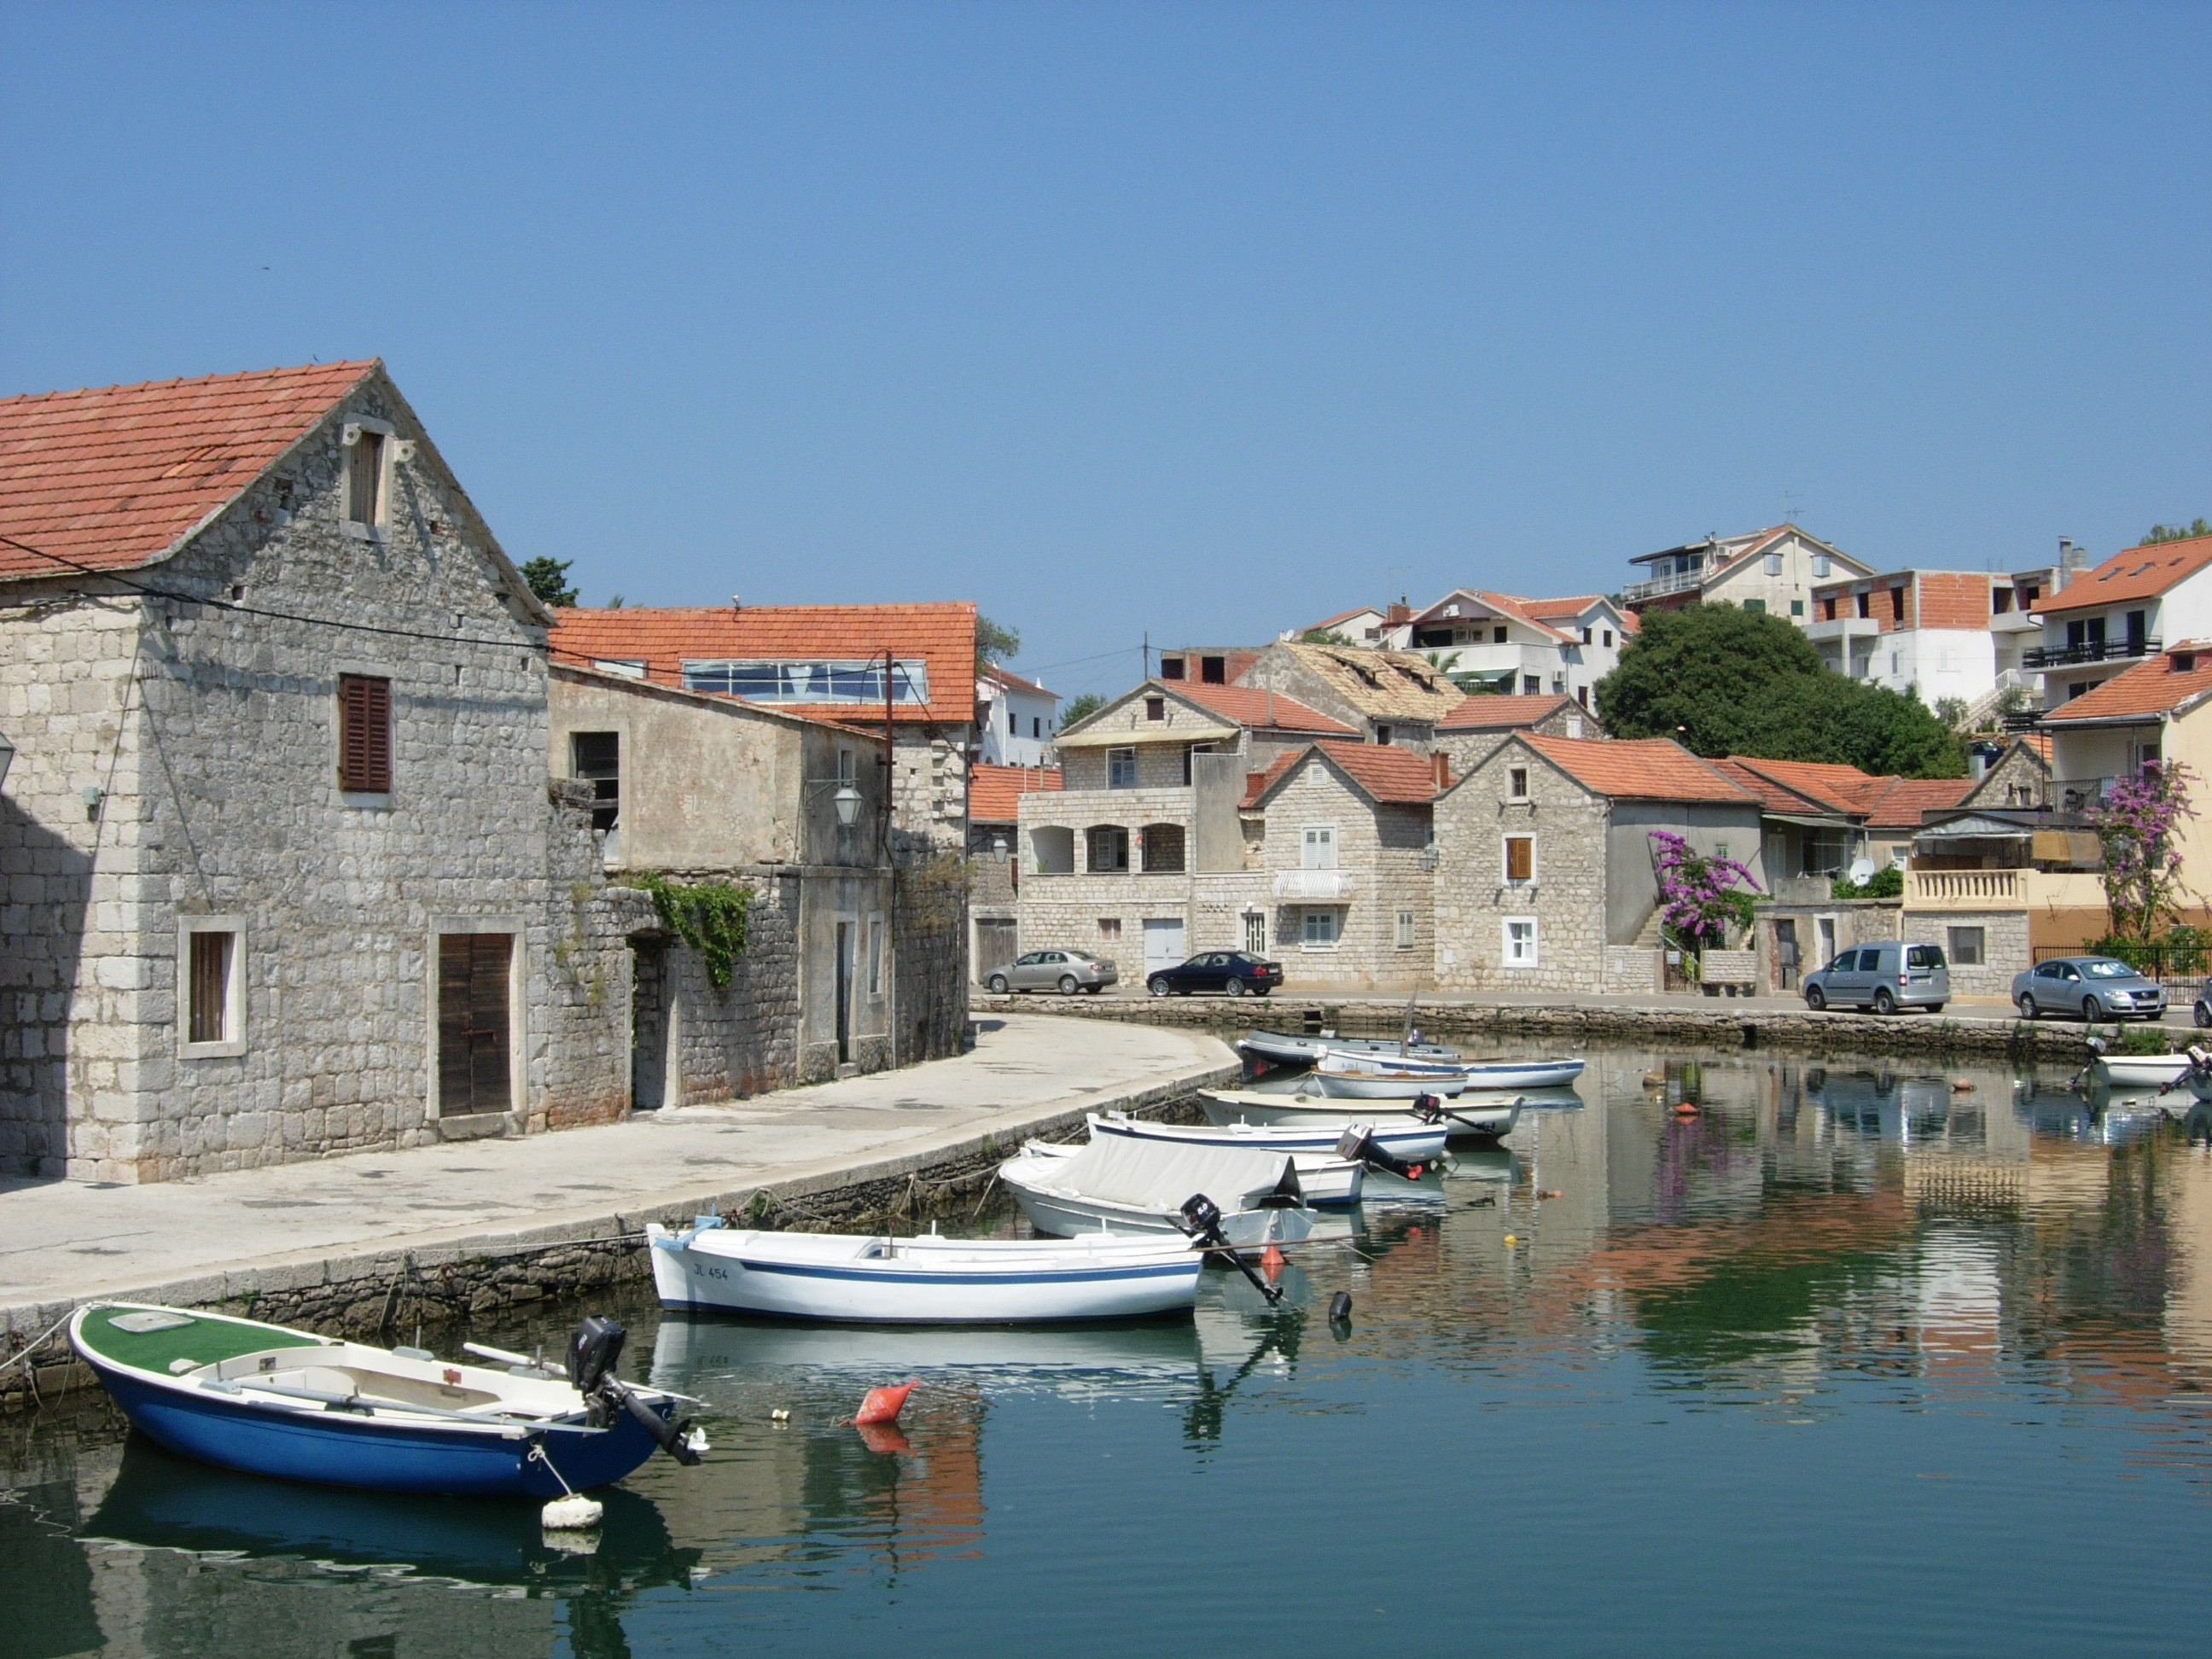 Boats_in_the_canal_of_Vrboska